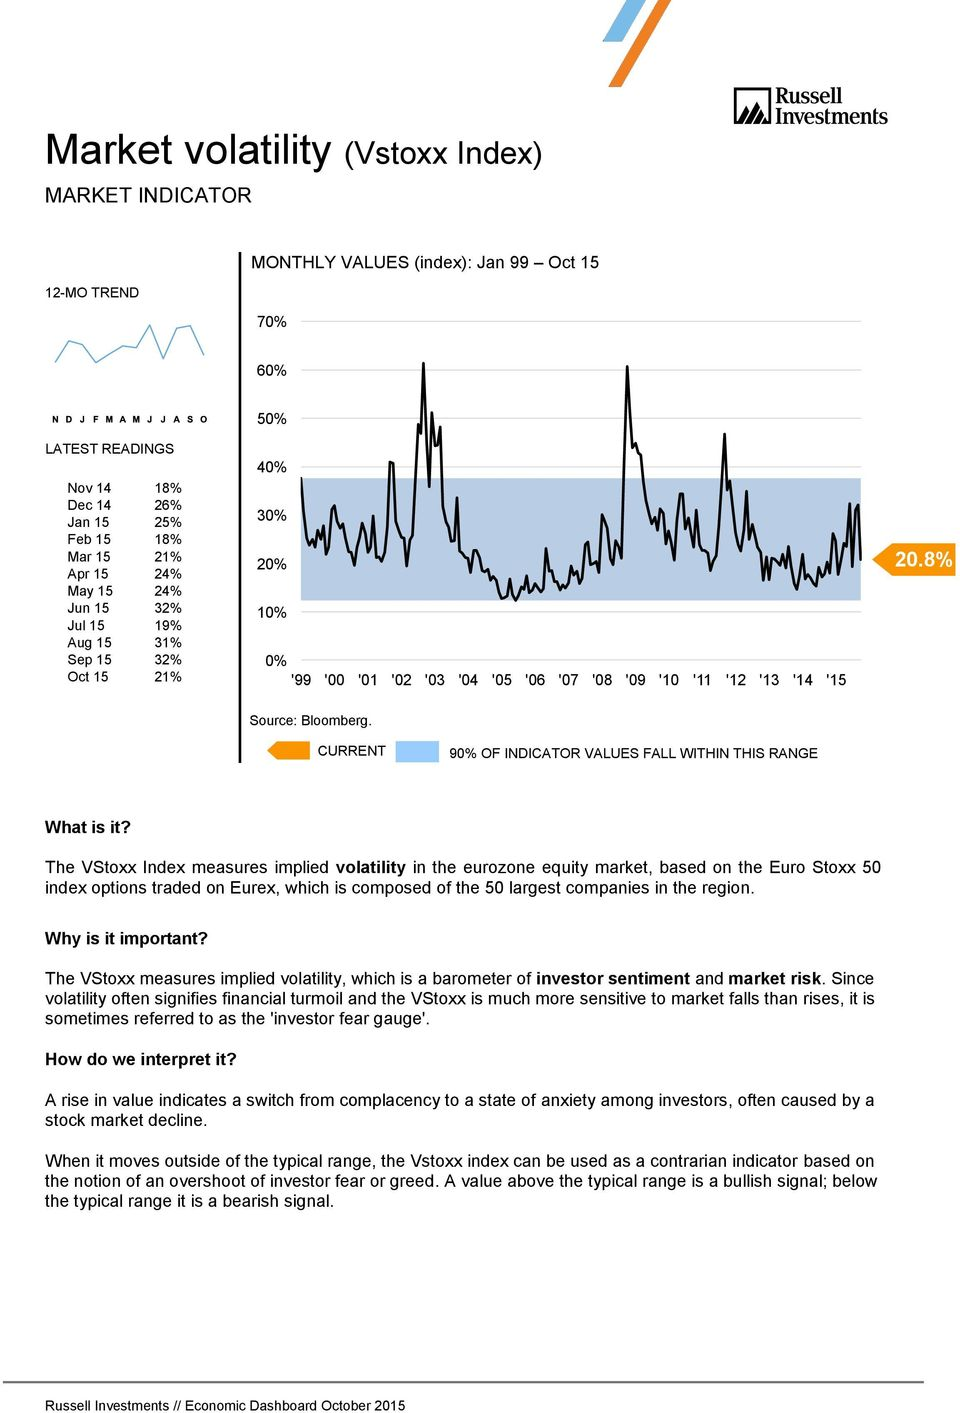 8% The VStoxx Index measures implied volatility in the eurozone equity market, based on the Euro Stoxx 50 index options traded on Eurex, which is composed of the 50 largest companies in the region.